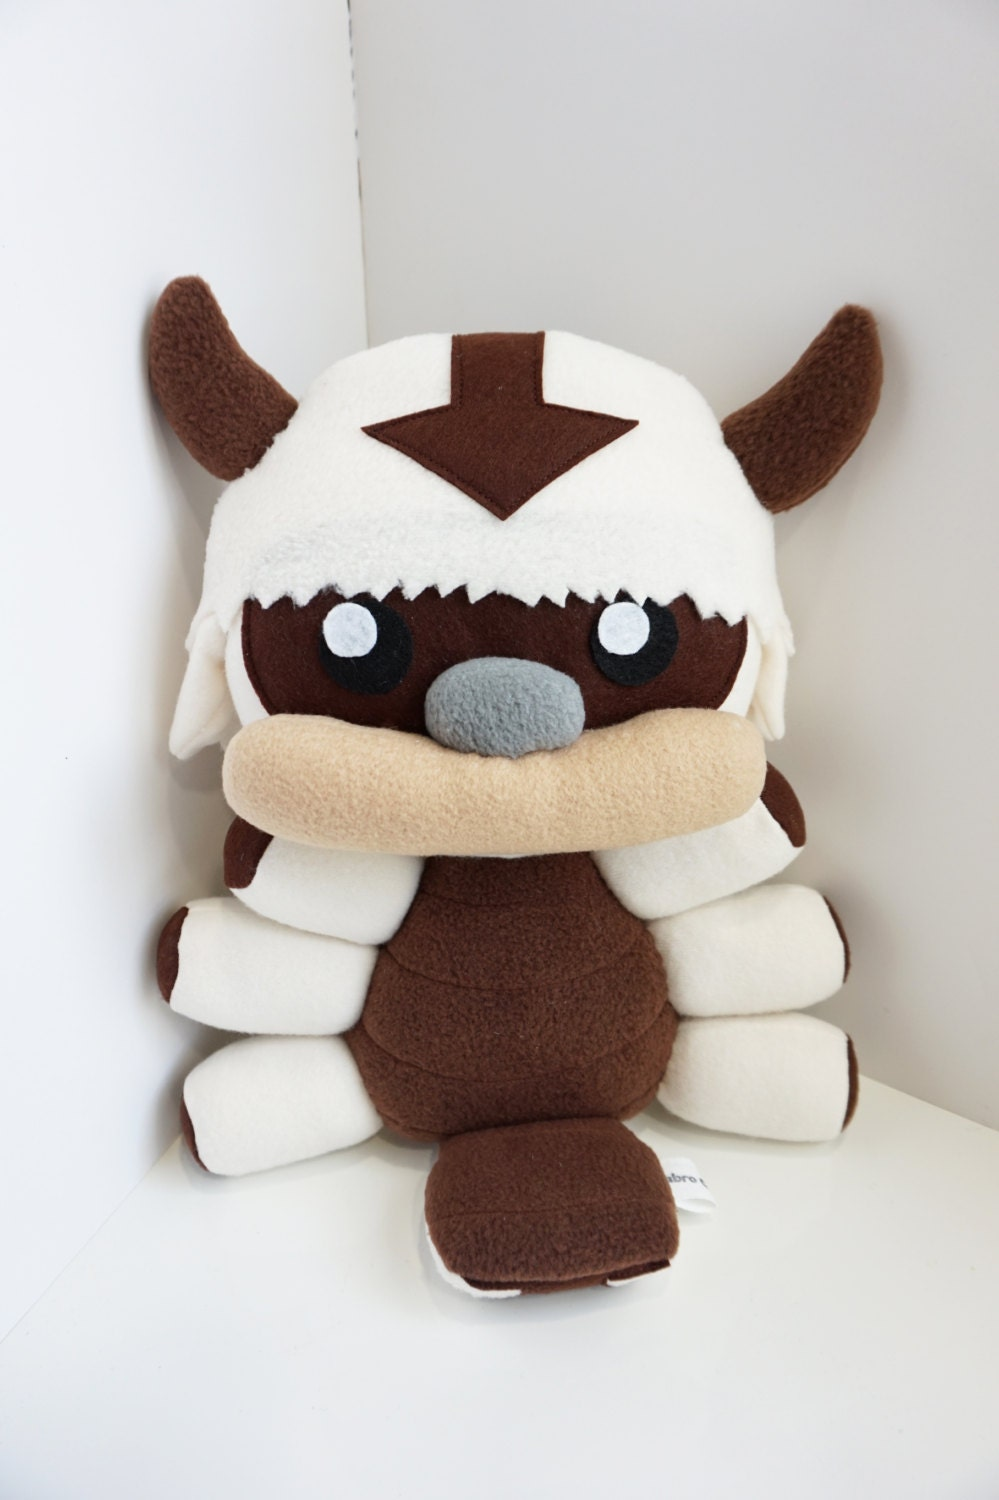 Appa Plush Inspired By Avatar The Last Airbender Flying Bison